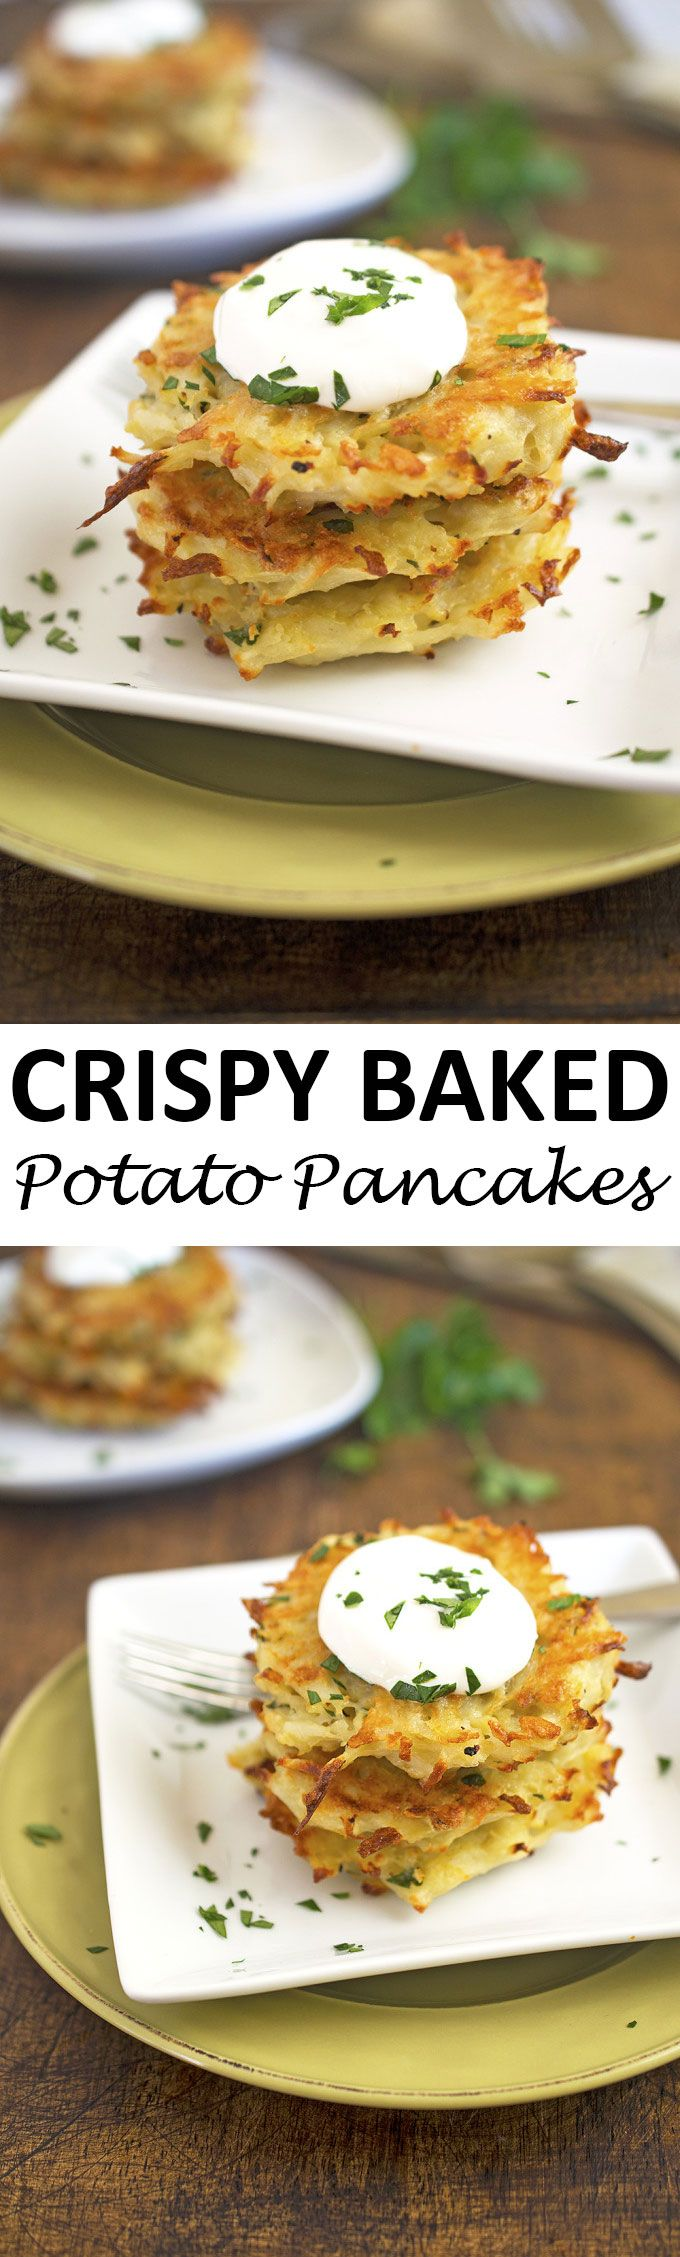 Crispy Baked Potato Pancakes stuffed with shredded potatoes, Parmesan cheese…